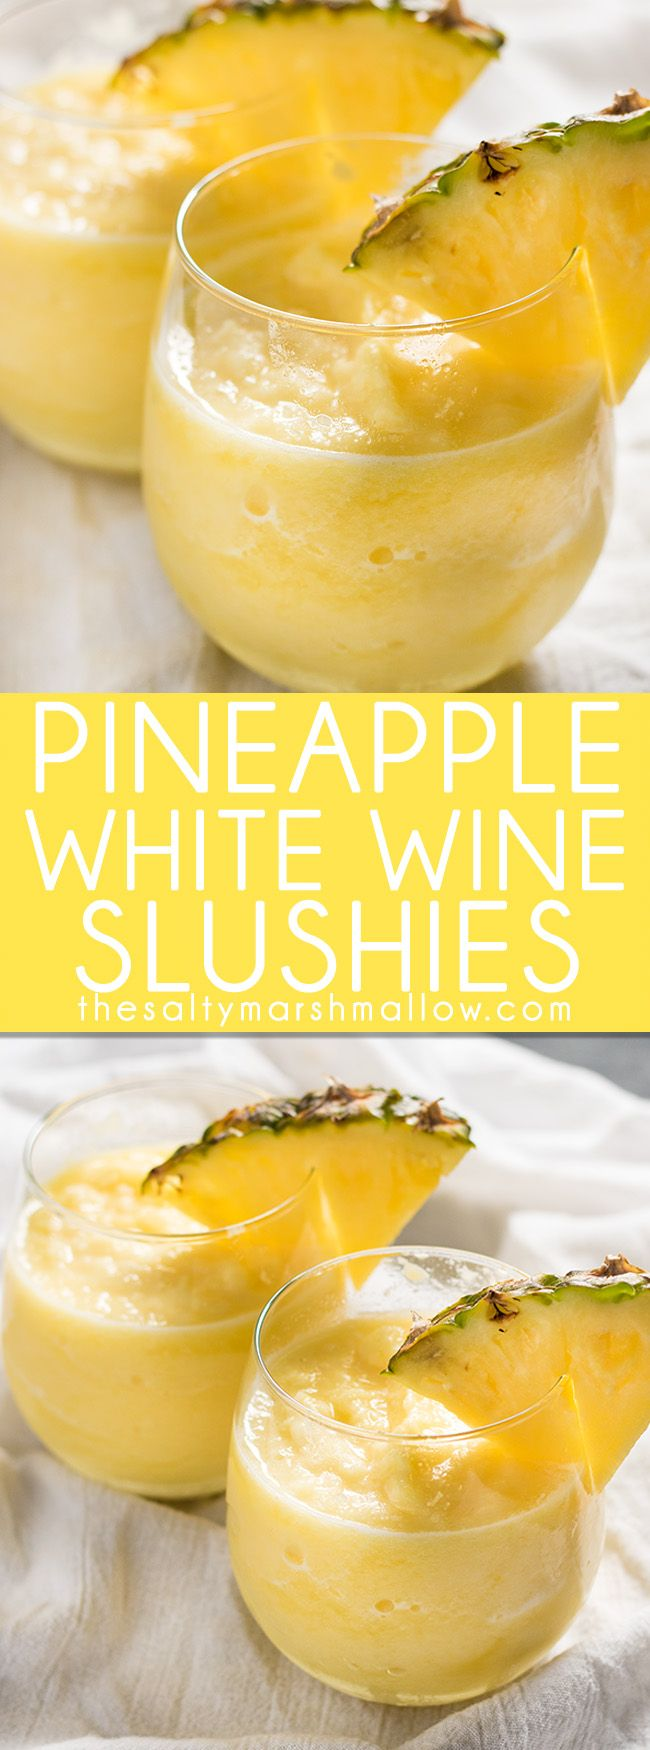 Pineapple White Wine Slushies: These white wine slushies are easy to make in your blender right at home with only two ingredients. Perfect with moscato, chardonnay, or any white wine you prefer. A fun and